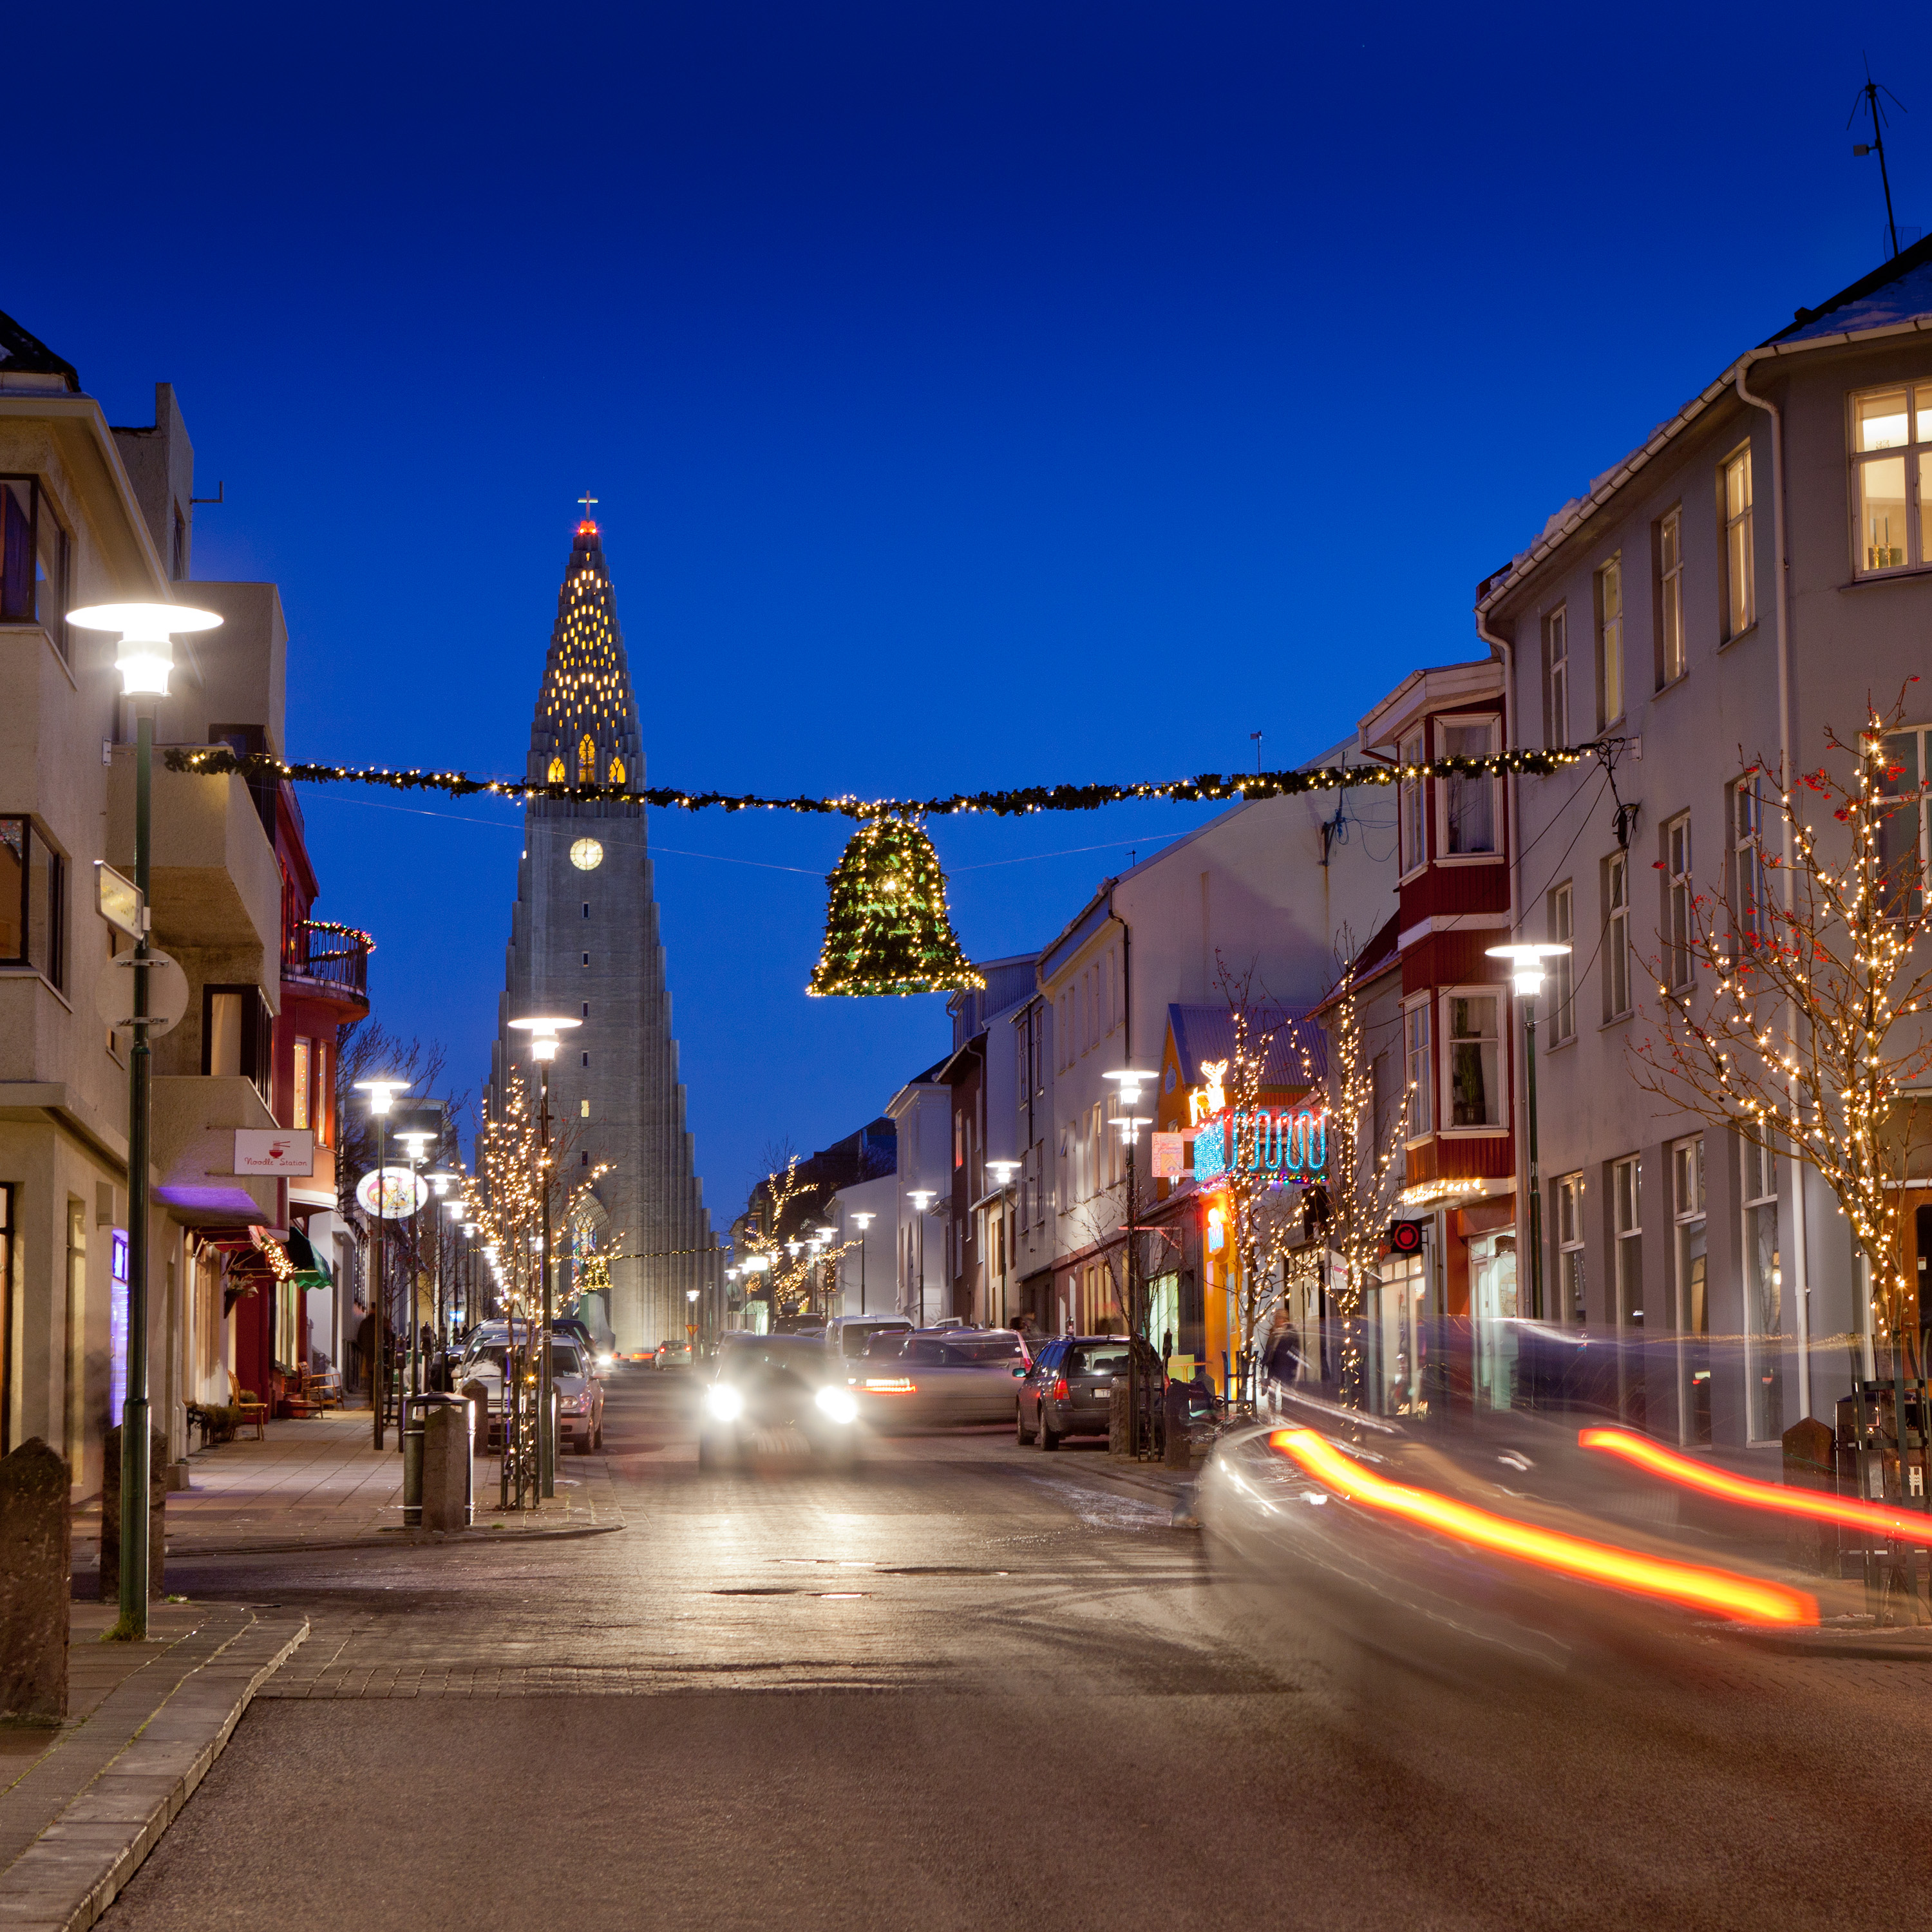 iceland in december merry christmas must see in iceland - Merry Christmas In Icelandic